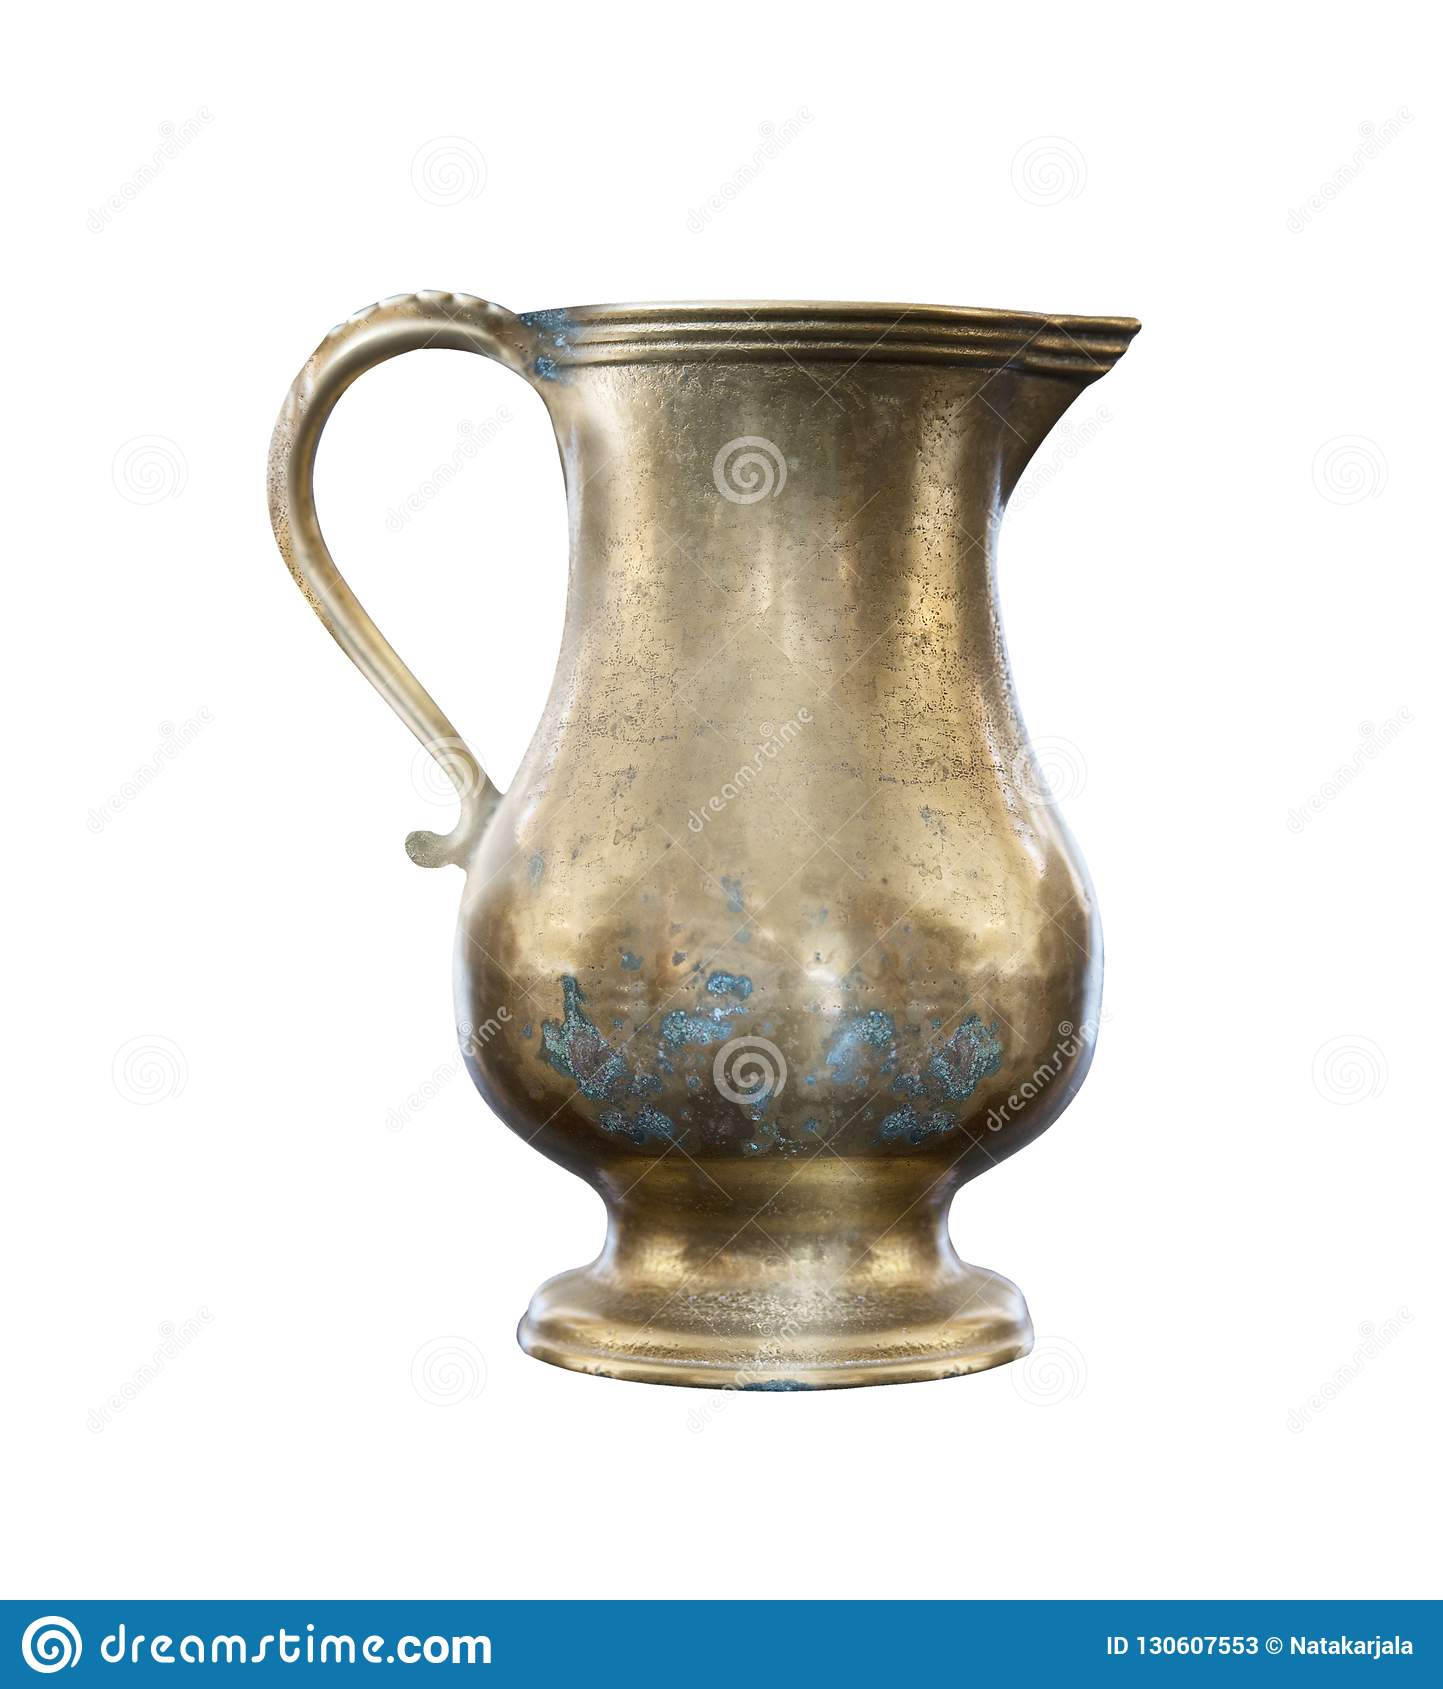 Old vintage copper jug on a white background, isolated